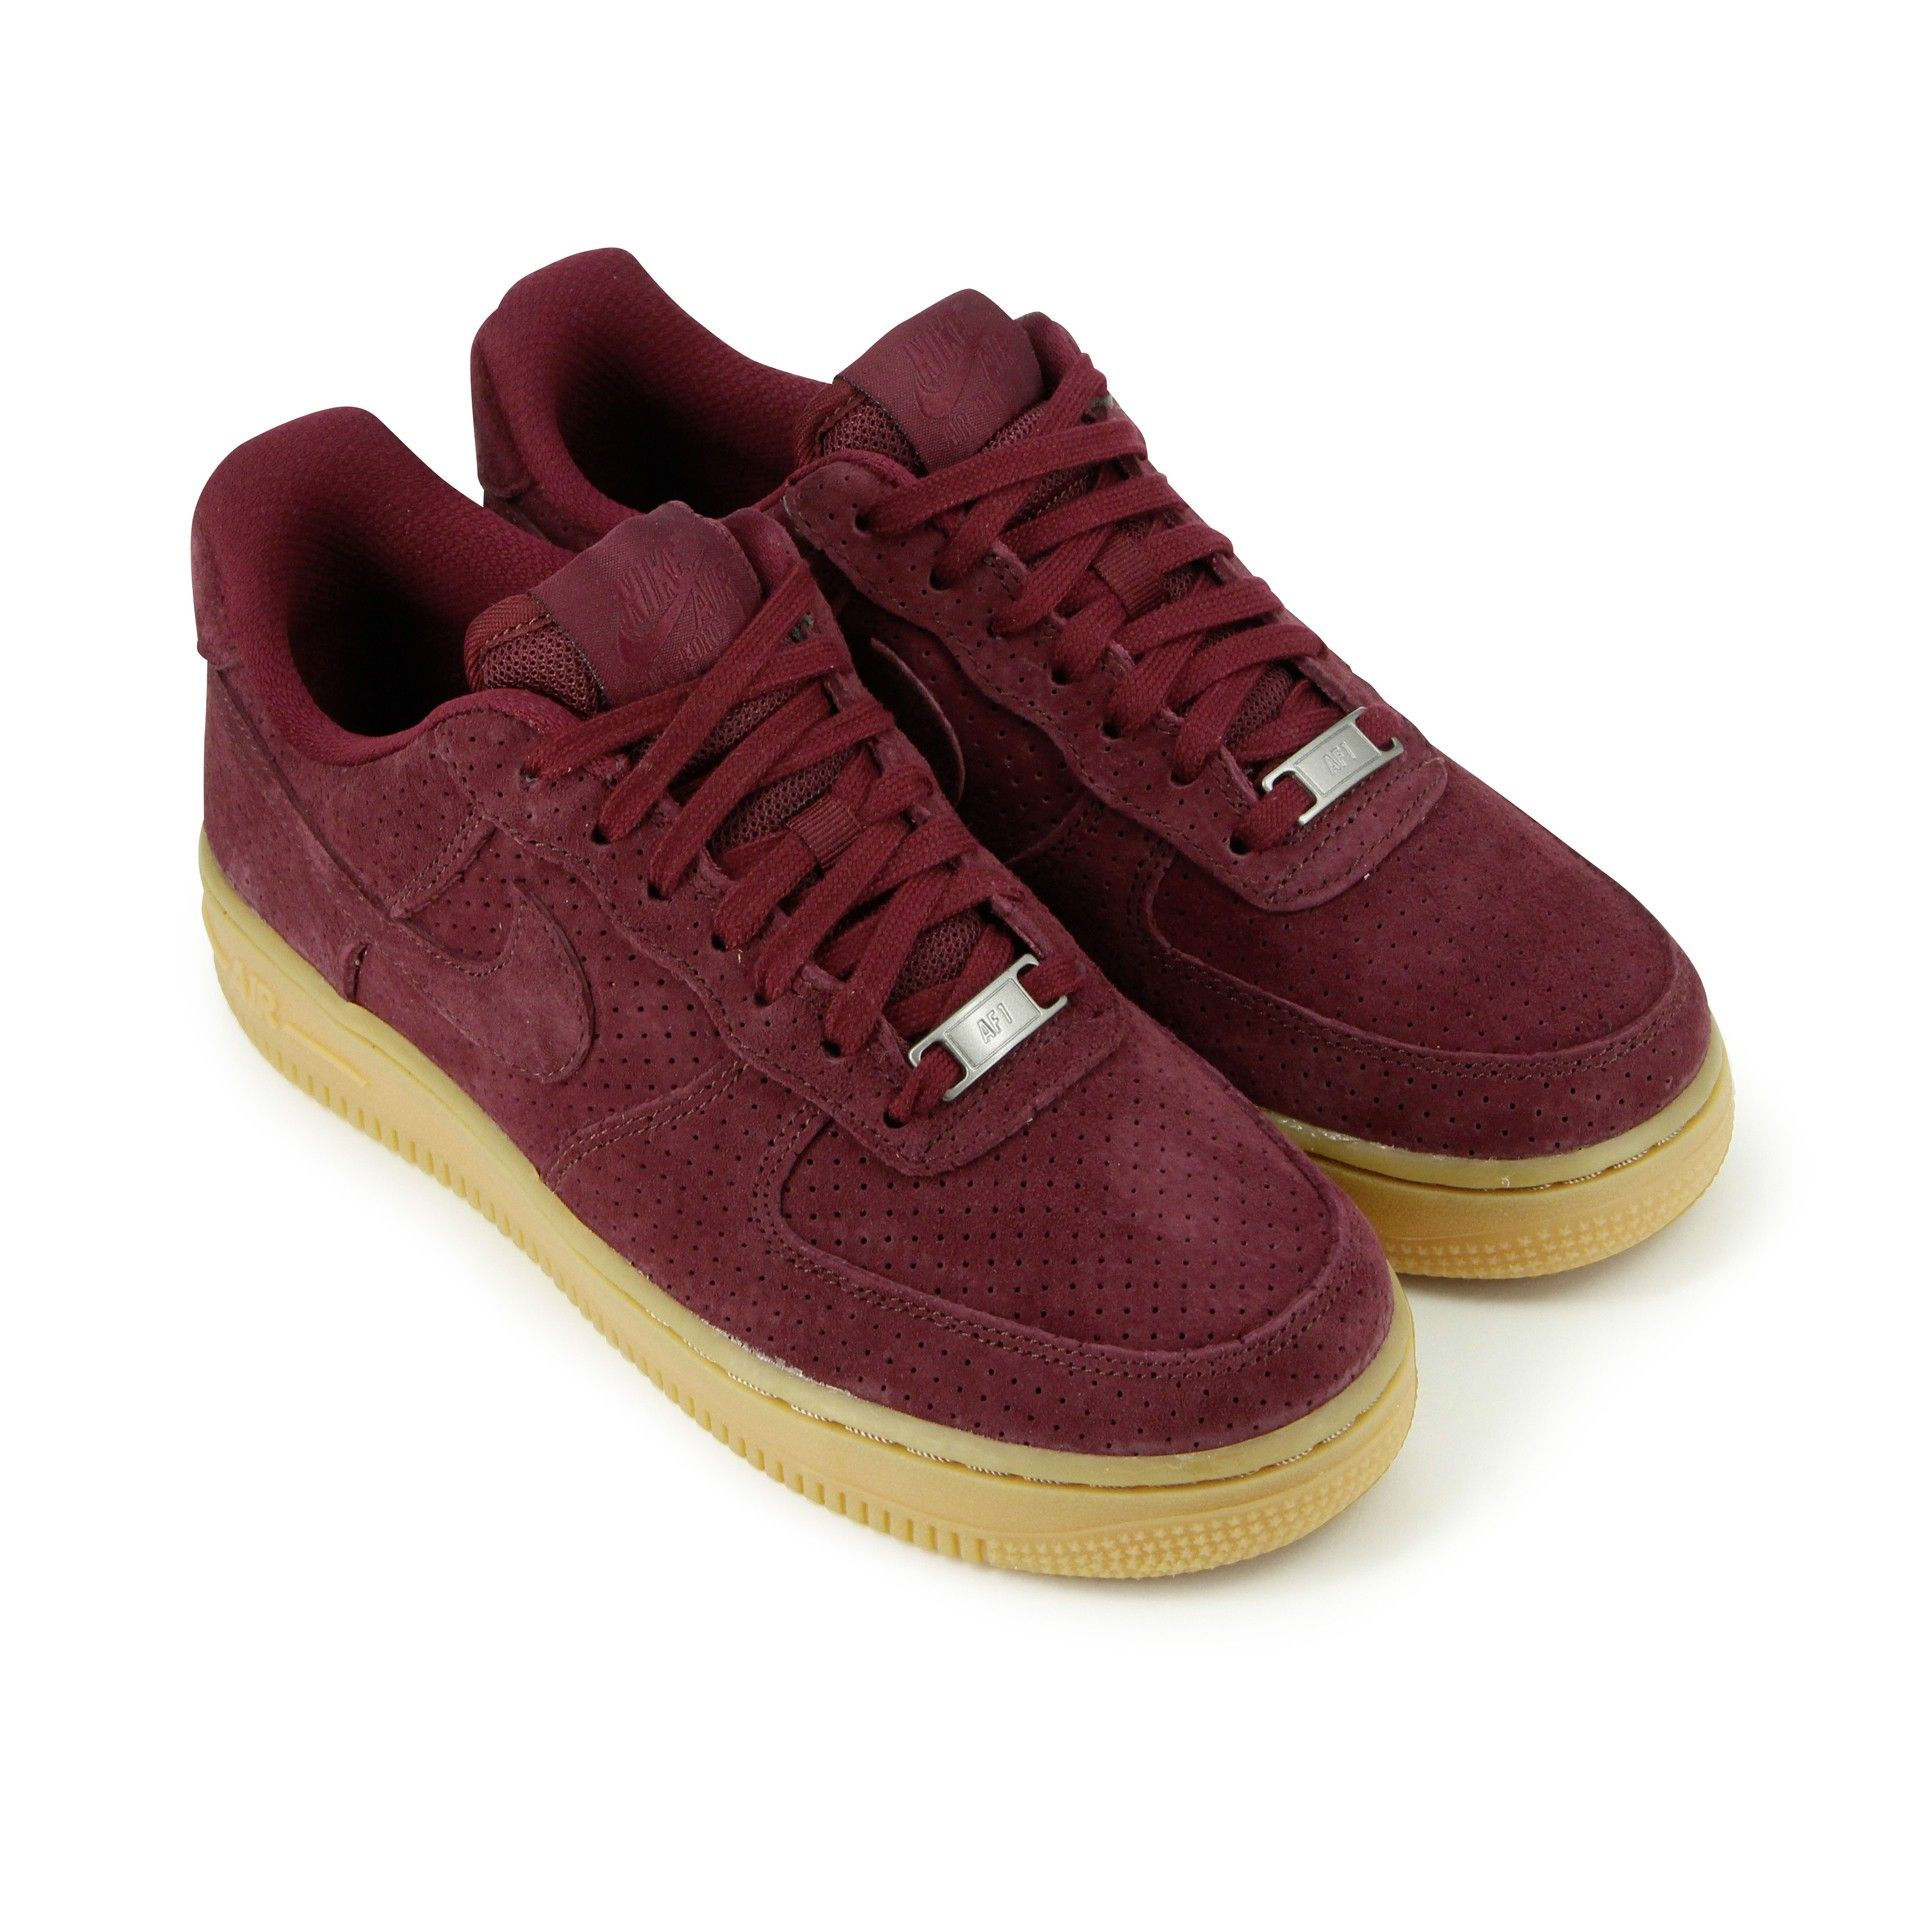 ... AIR FORCE 1 SUEDE - AIR FORCE 1 - Chaussure - Chaussure - Femme - NIKE  ...